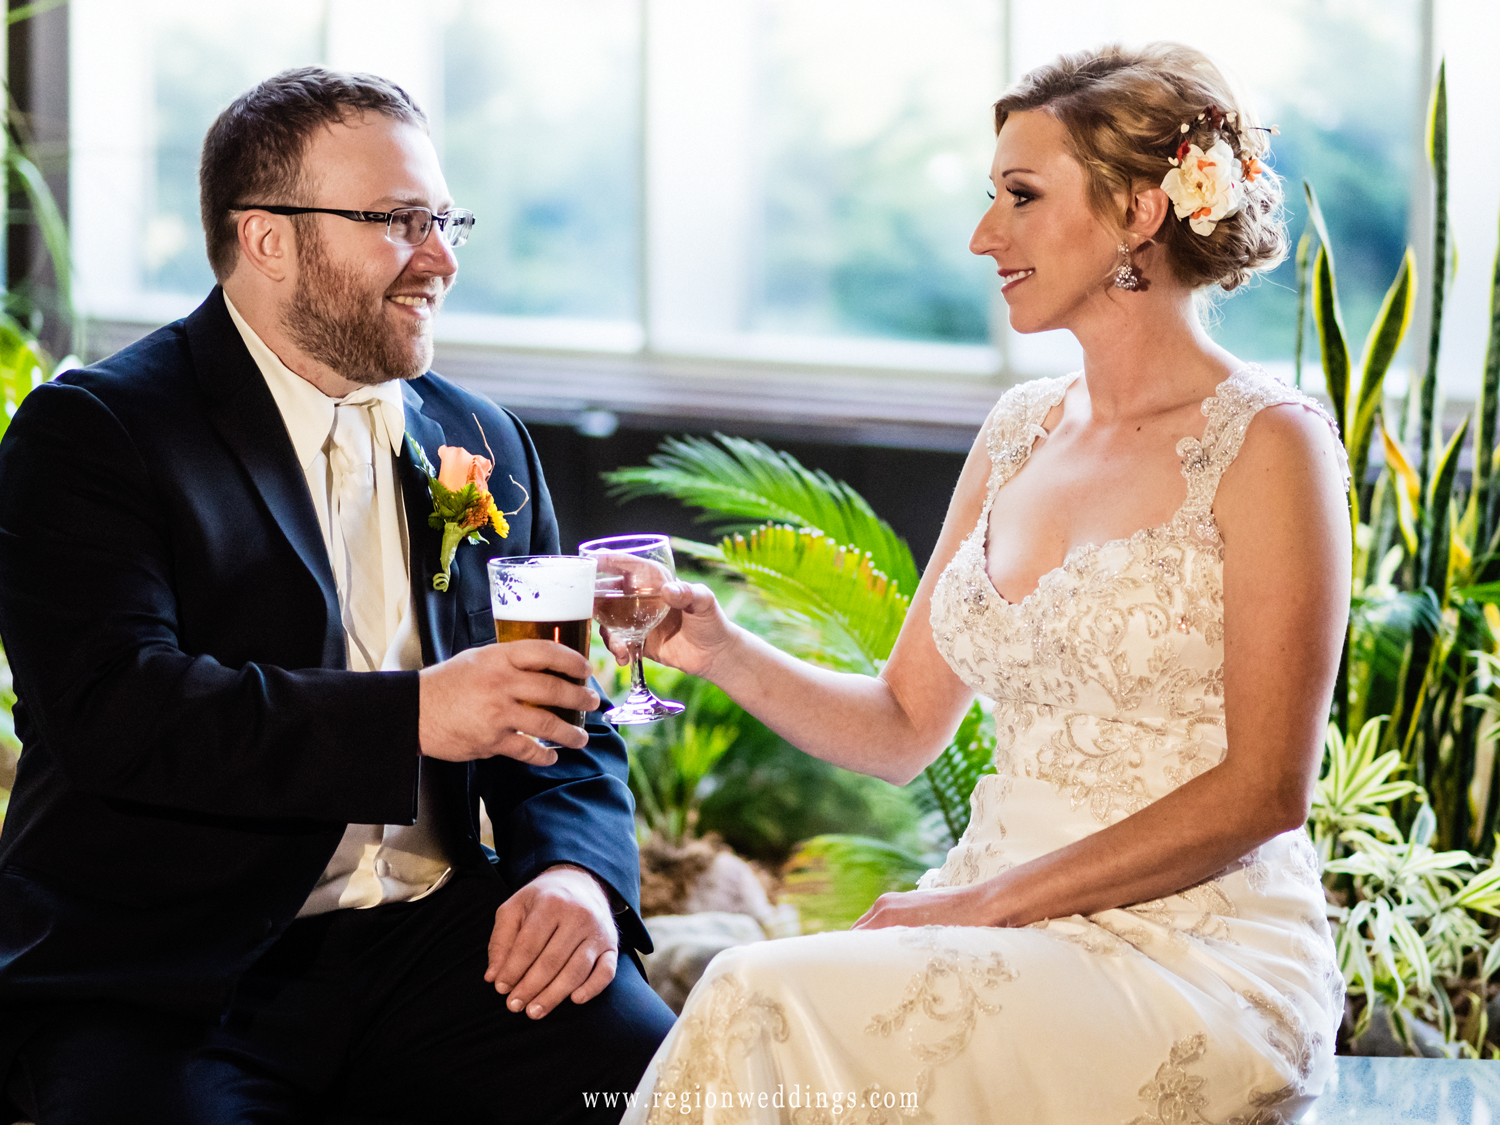 A toast on wedding day for the bride and groom.